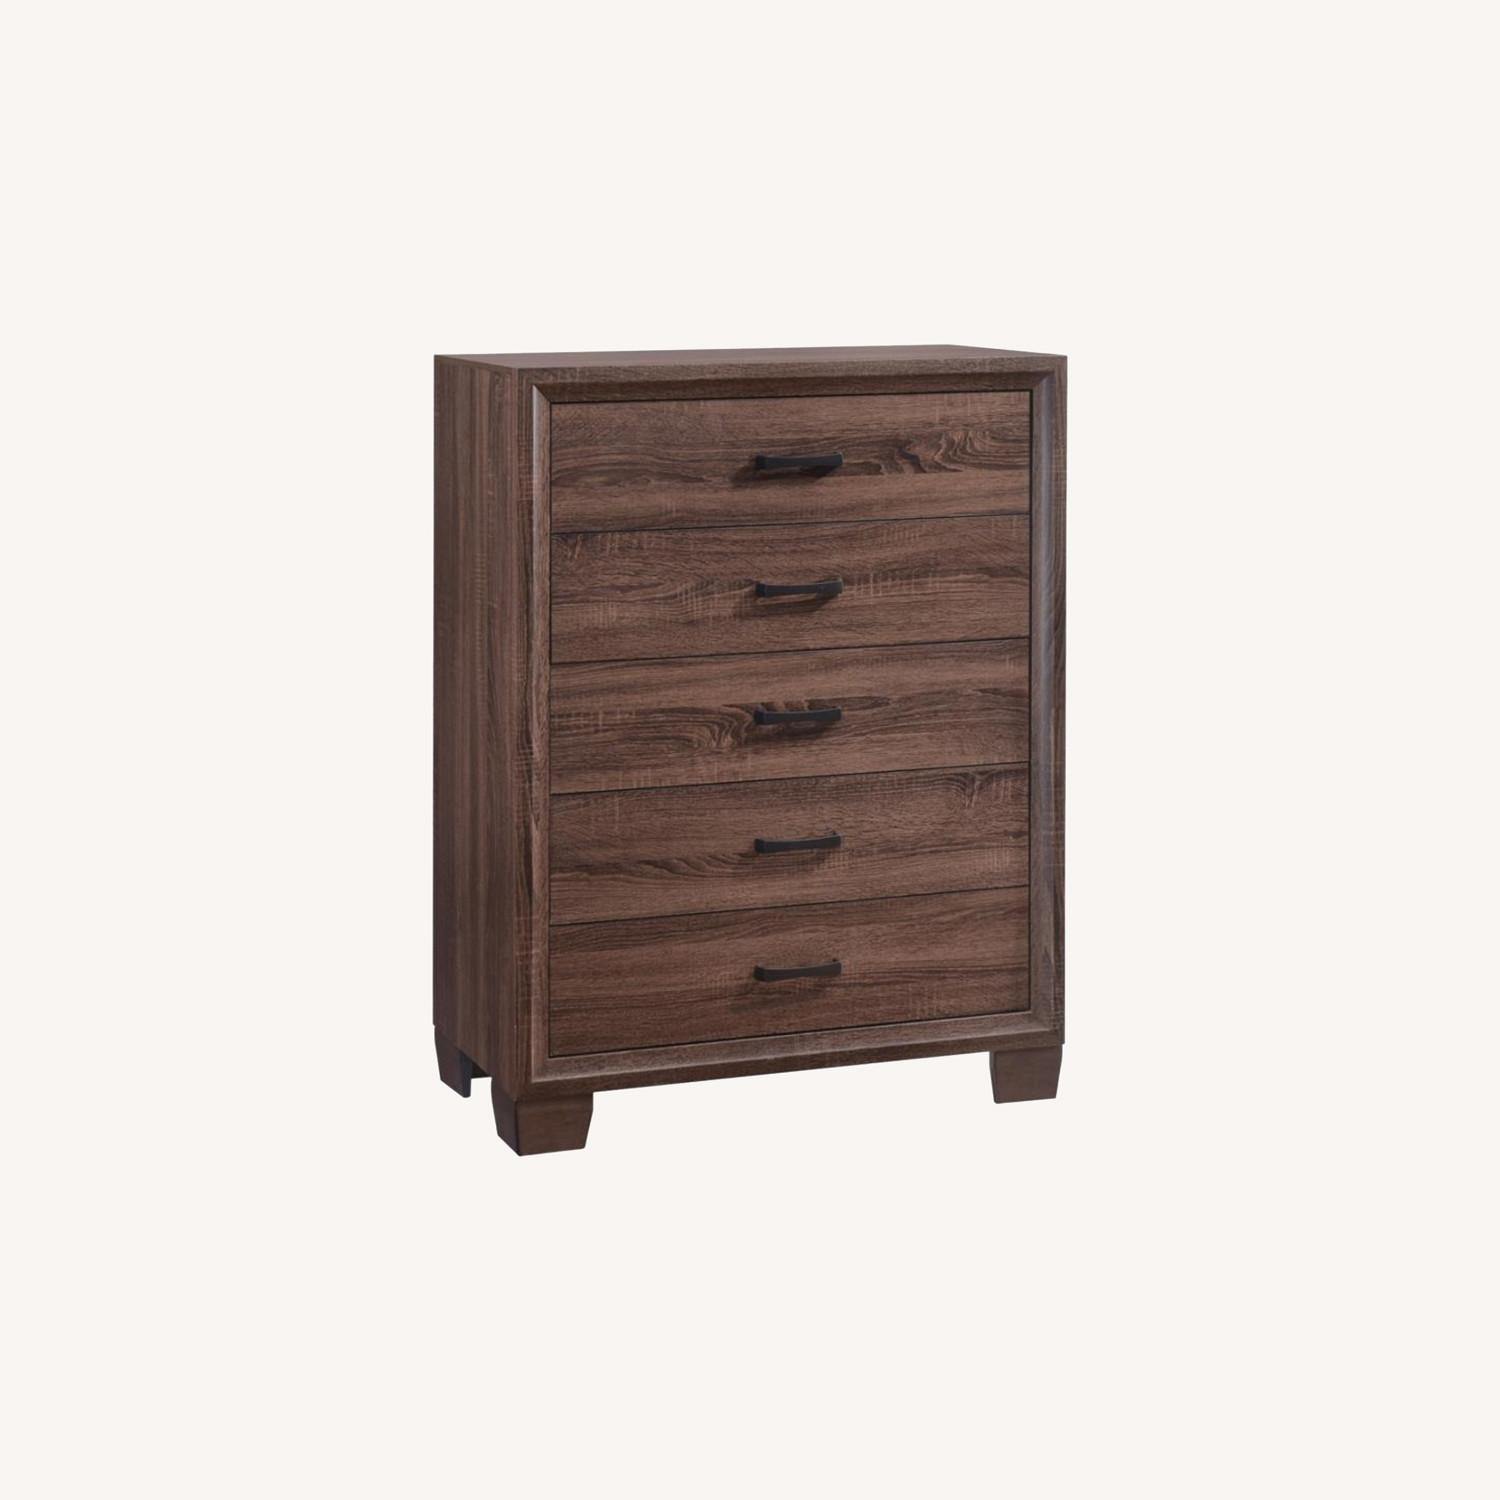 Modern Chest In Warm Brown Finish - image-6